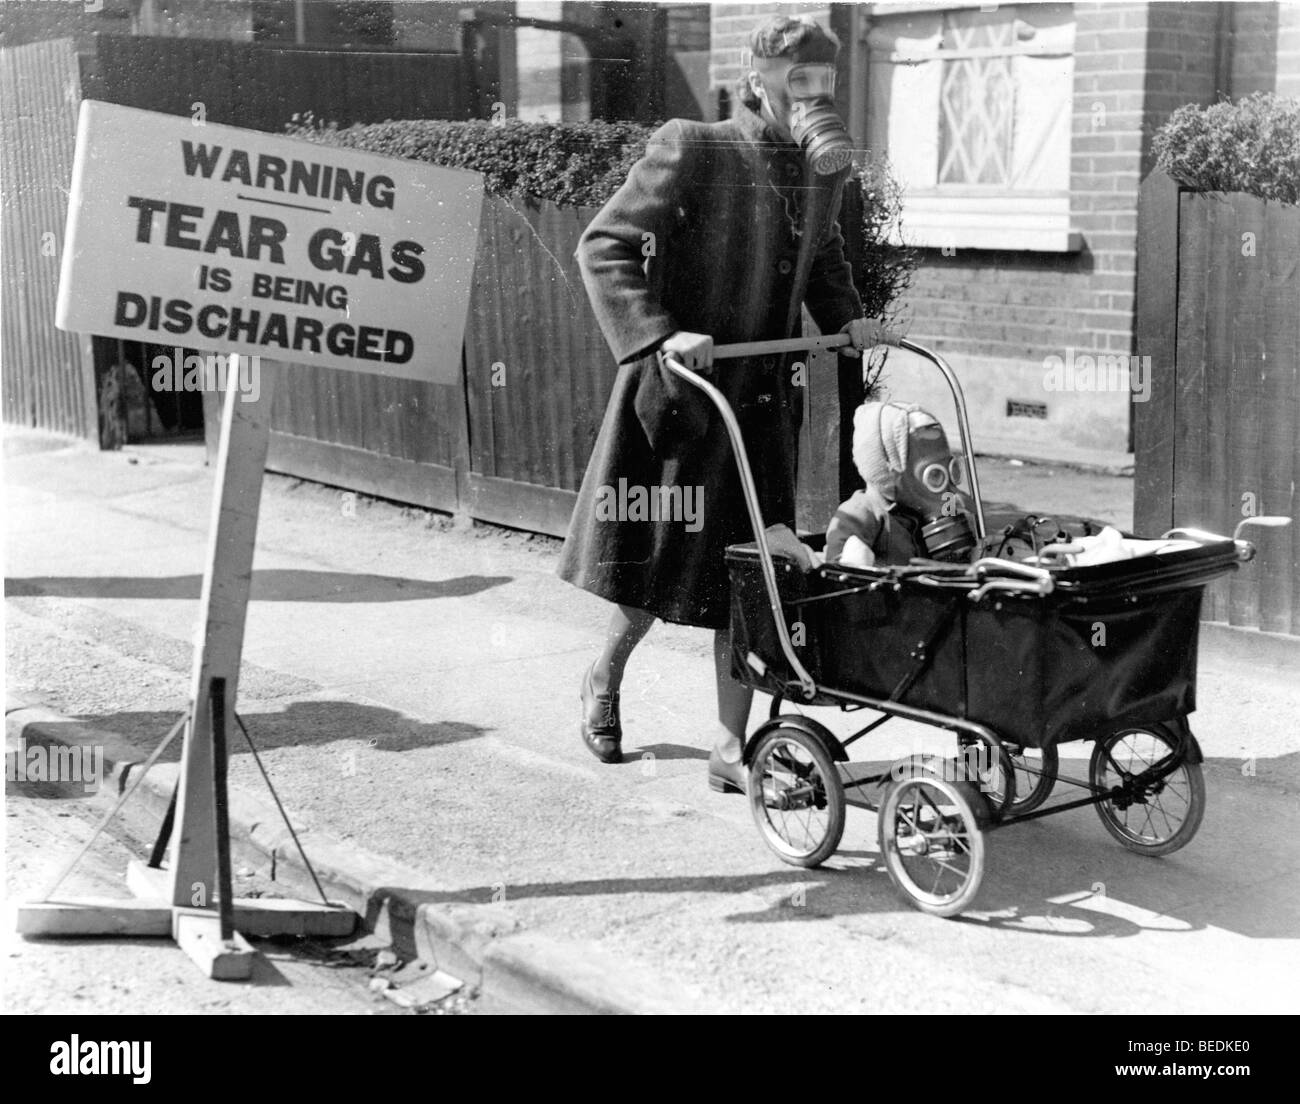 A Mother Pushes Her Baby In A Stroller Wearing Gas Masks